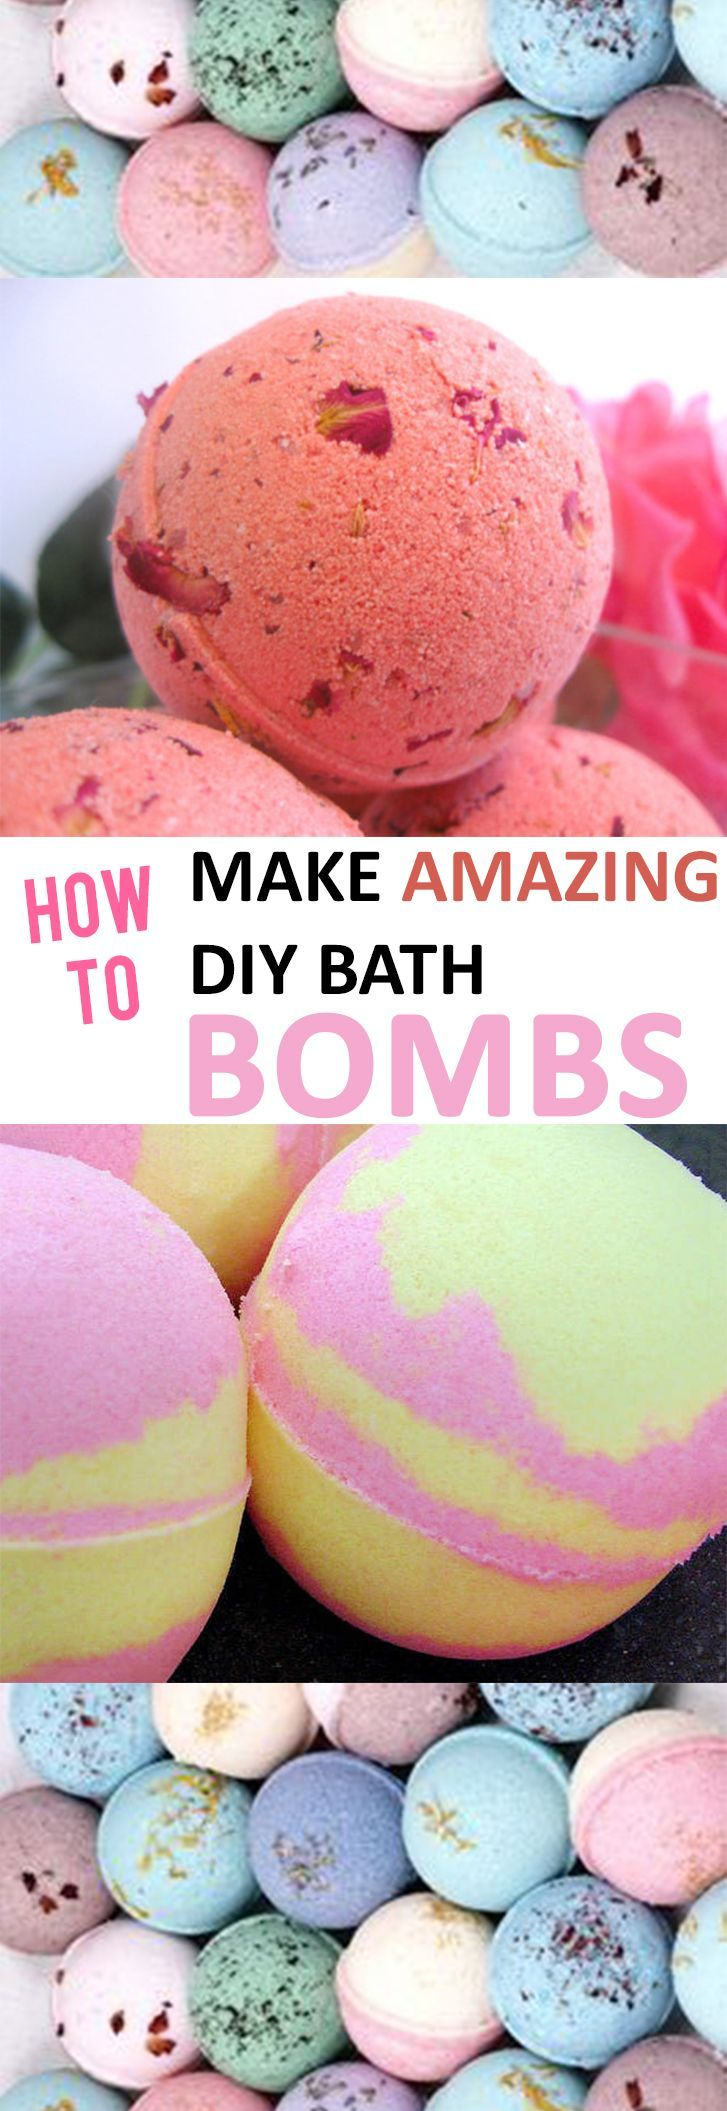 How to Make Amazing DIY Bath Bombs -